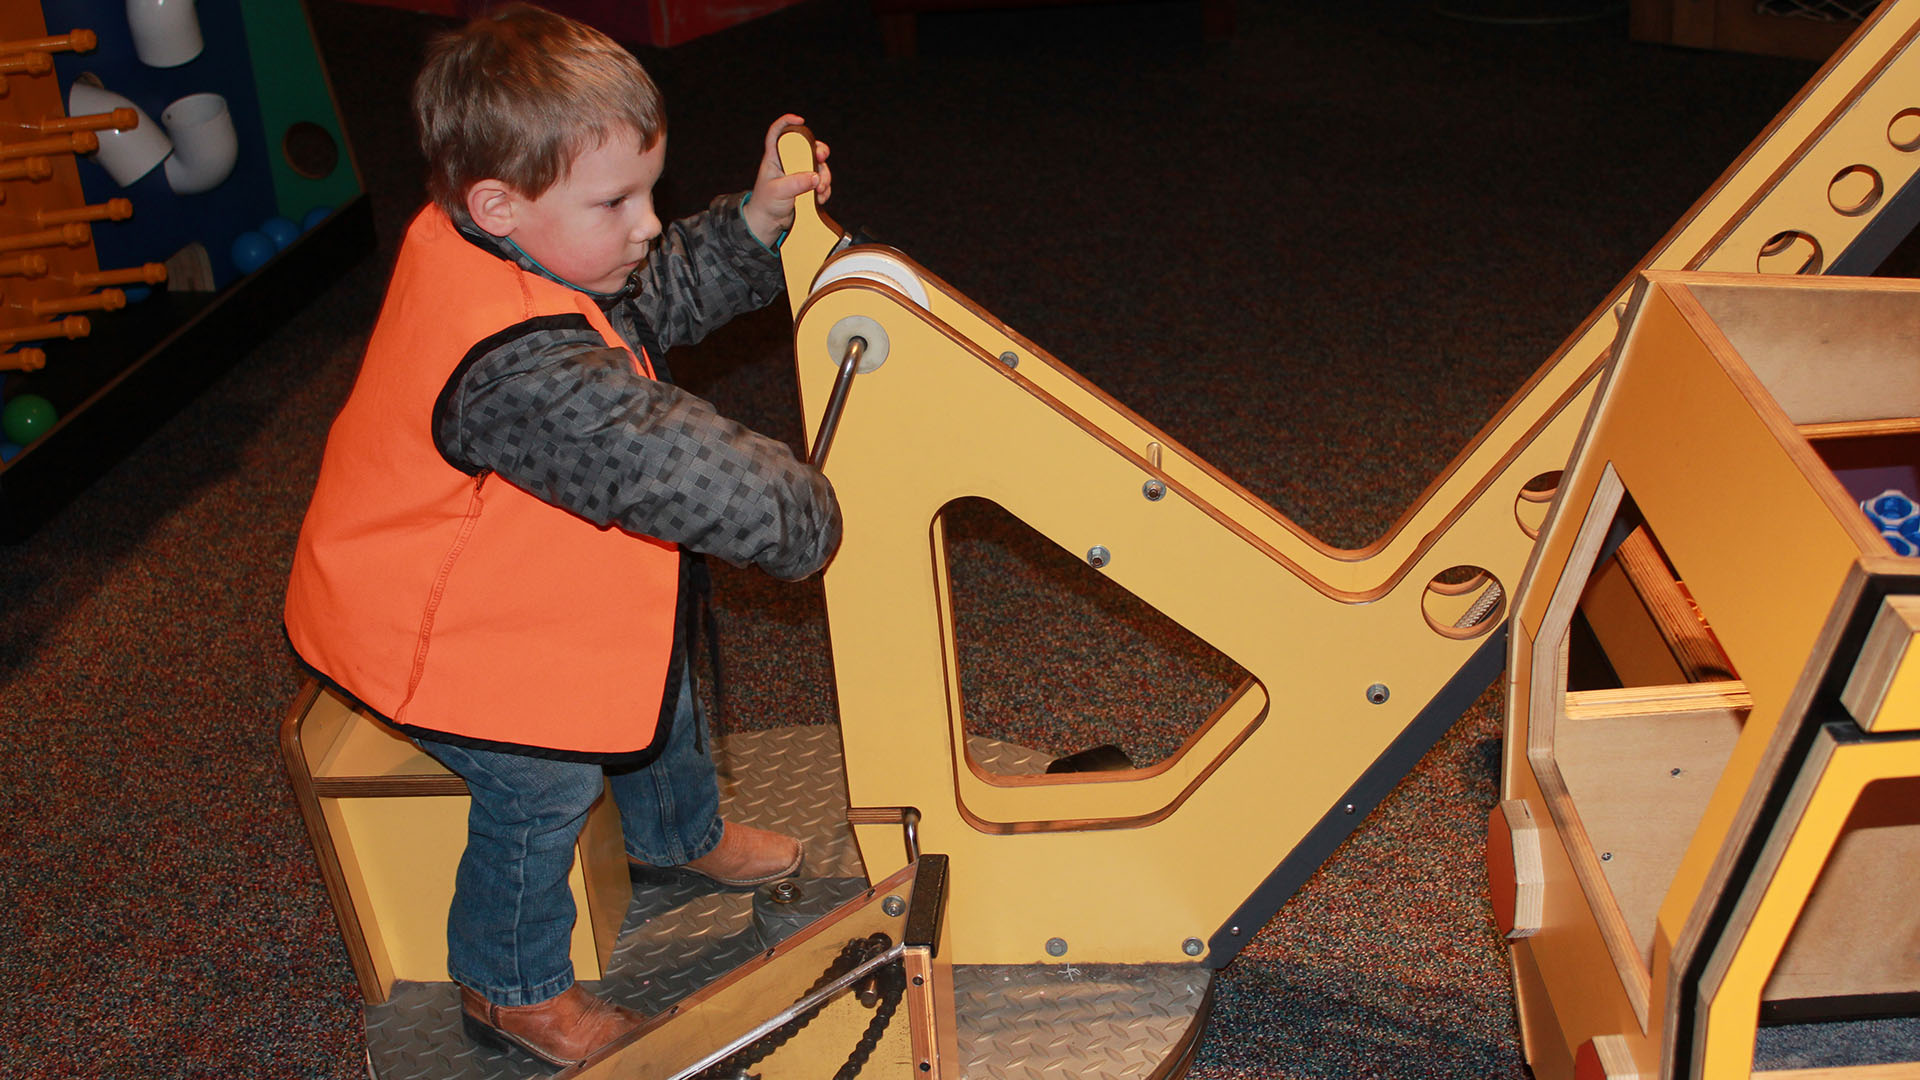 Discovery Center hopes to build stronger young minds with 3 new exhibits